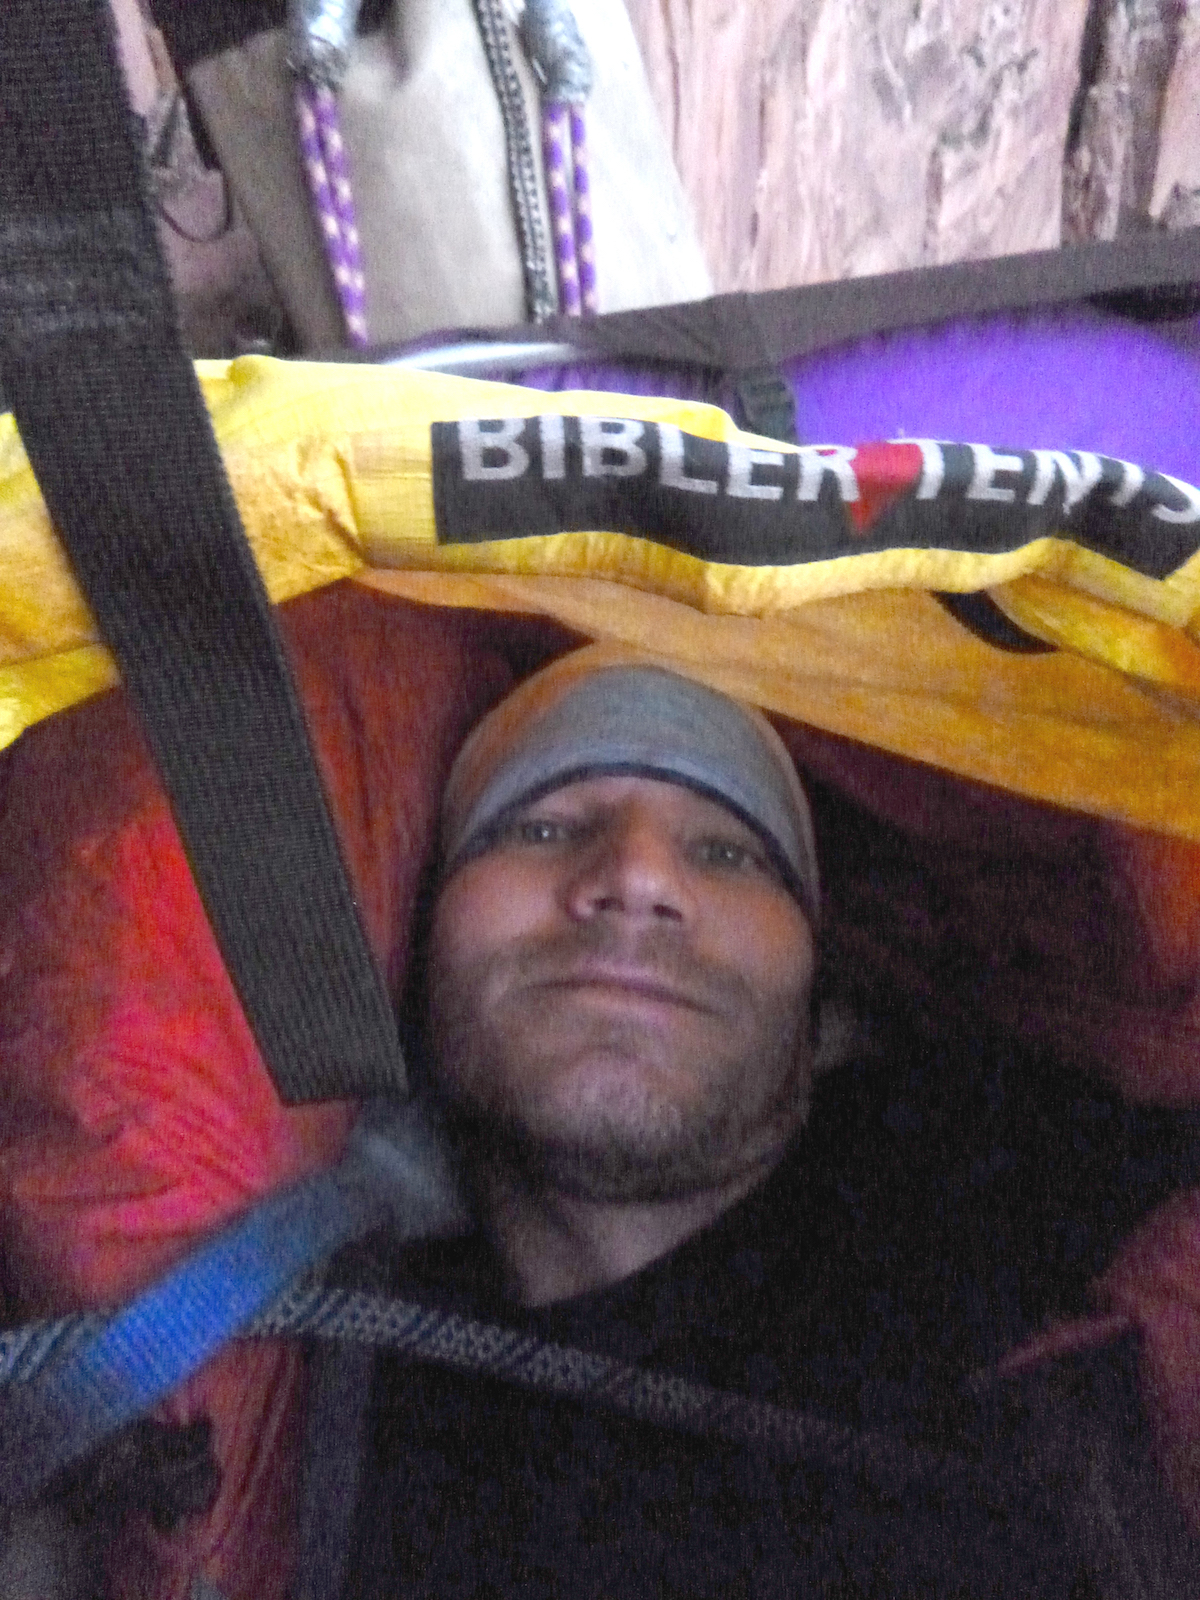 The author enjoys the comfort of the Mountain Equipment Xeros 800-fill, Russian Goose Down sleeping bag inside his bivy sack on the second morning of his solo ascent of Prodigal Sun (V 5.7 C2, 900') in Zion National Park, October 22. [Photo] Derek Franz